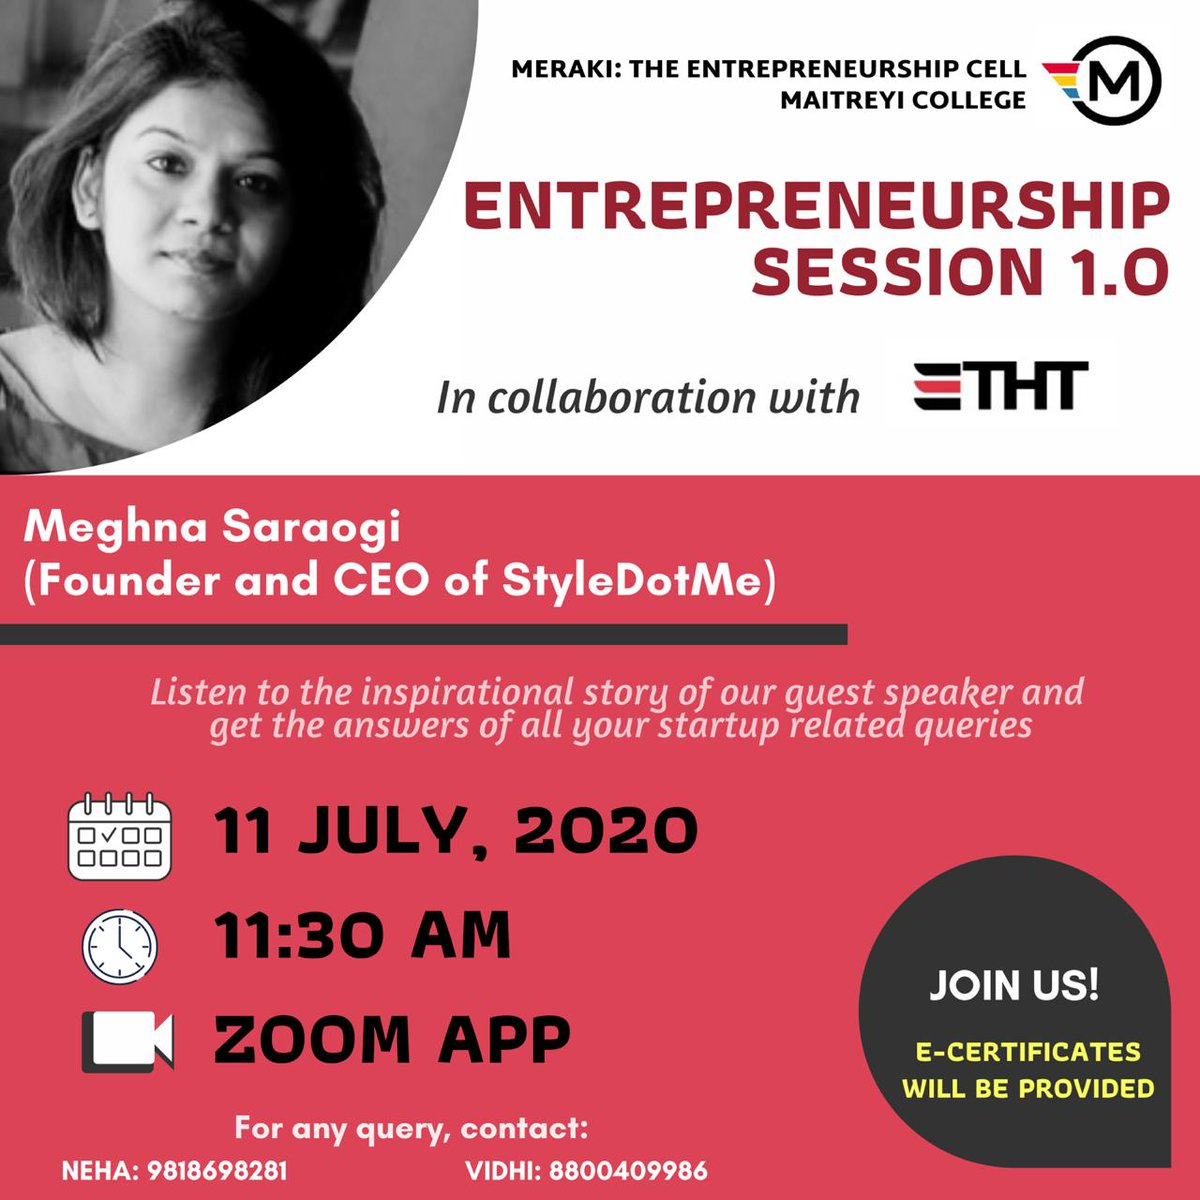 The Hustler Team and the MERAKI- THE ENTREPRENEURSHIP CELL of @Delhiuniversit brings an exclusive opportunities for the students to interact with India's Youngest Fashion Entrepreneur @Meghnasara , Founder & CEO @styledotme  Register Now on https://t.co/Khdqou8G1q  #startups https://t.co/jcjFbfb3Hs